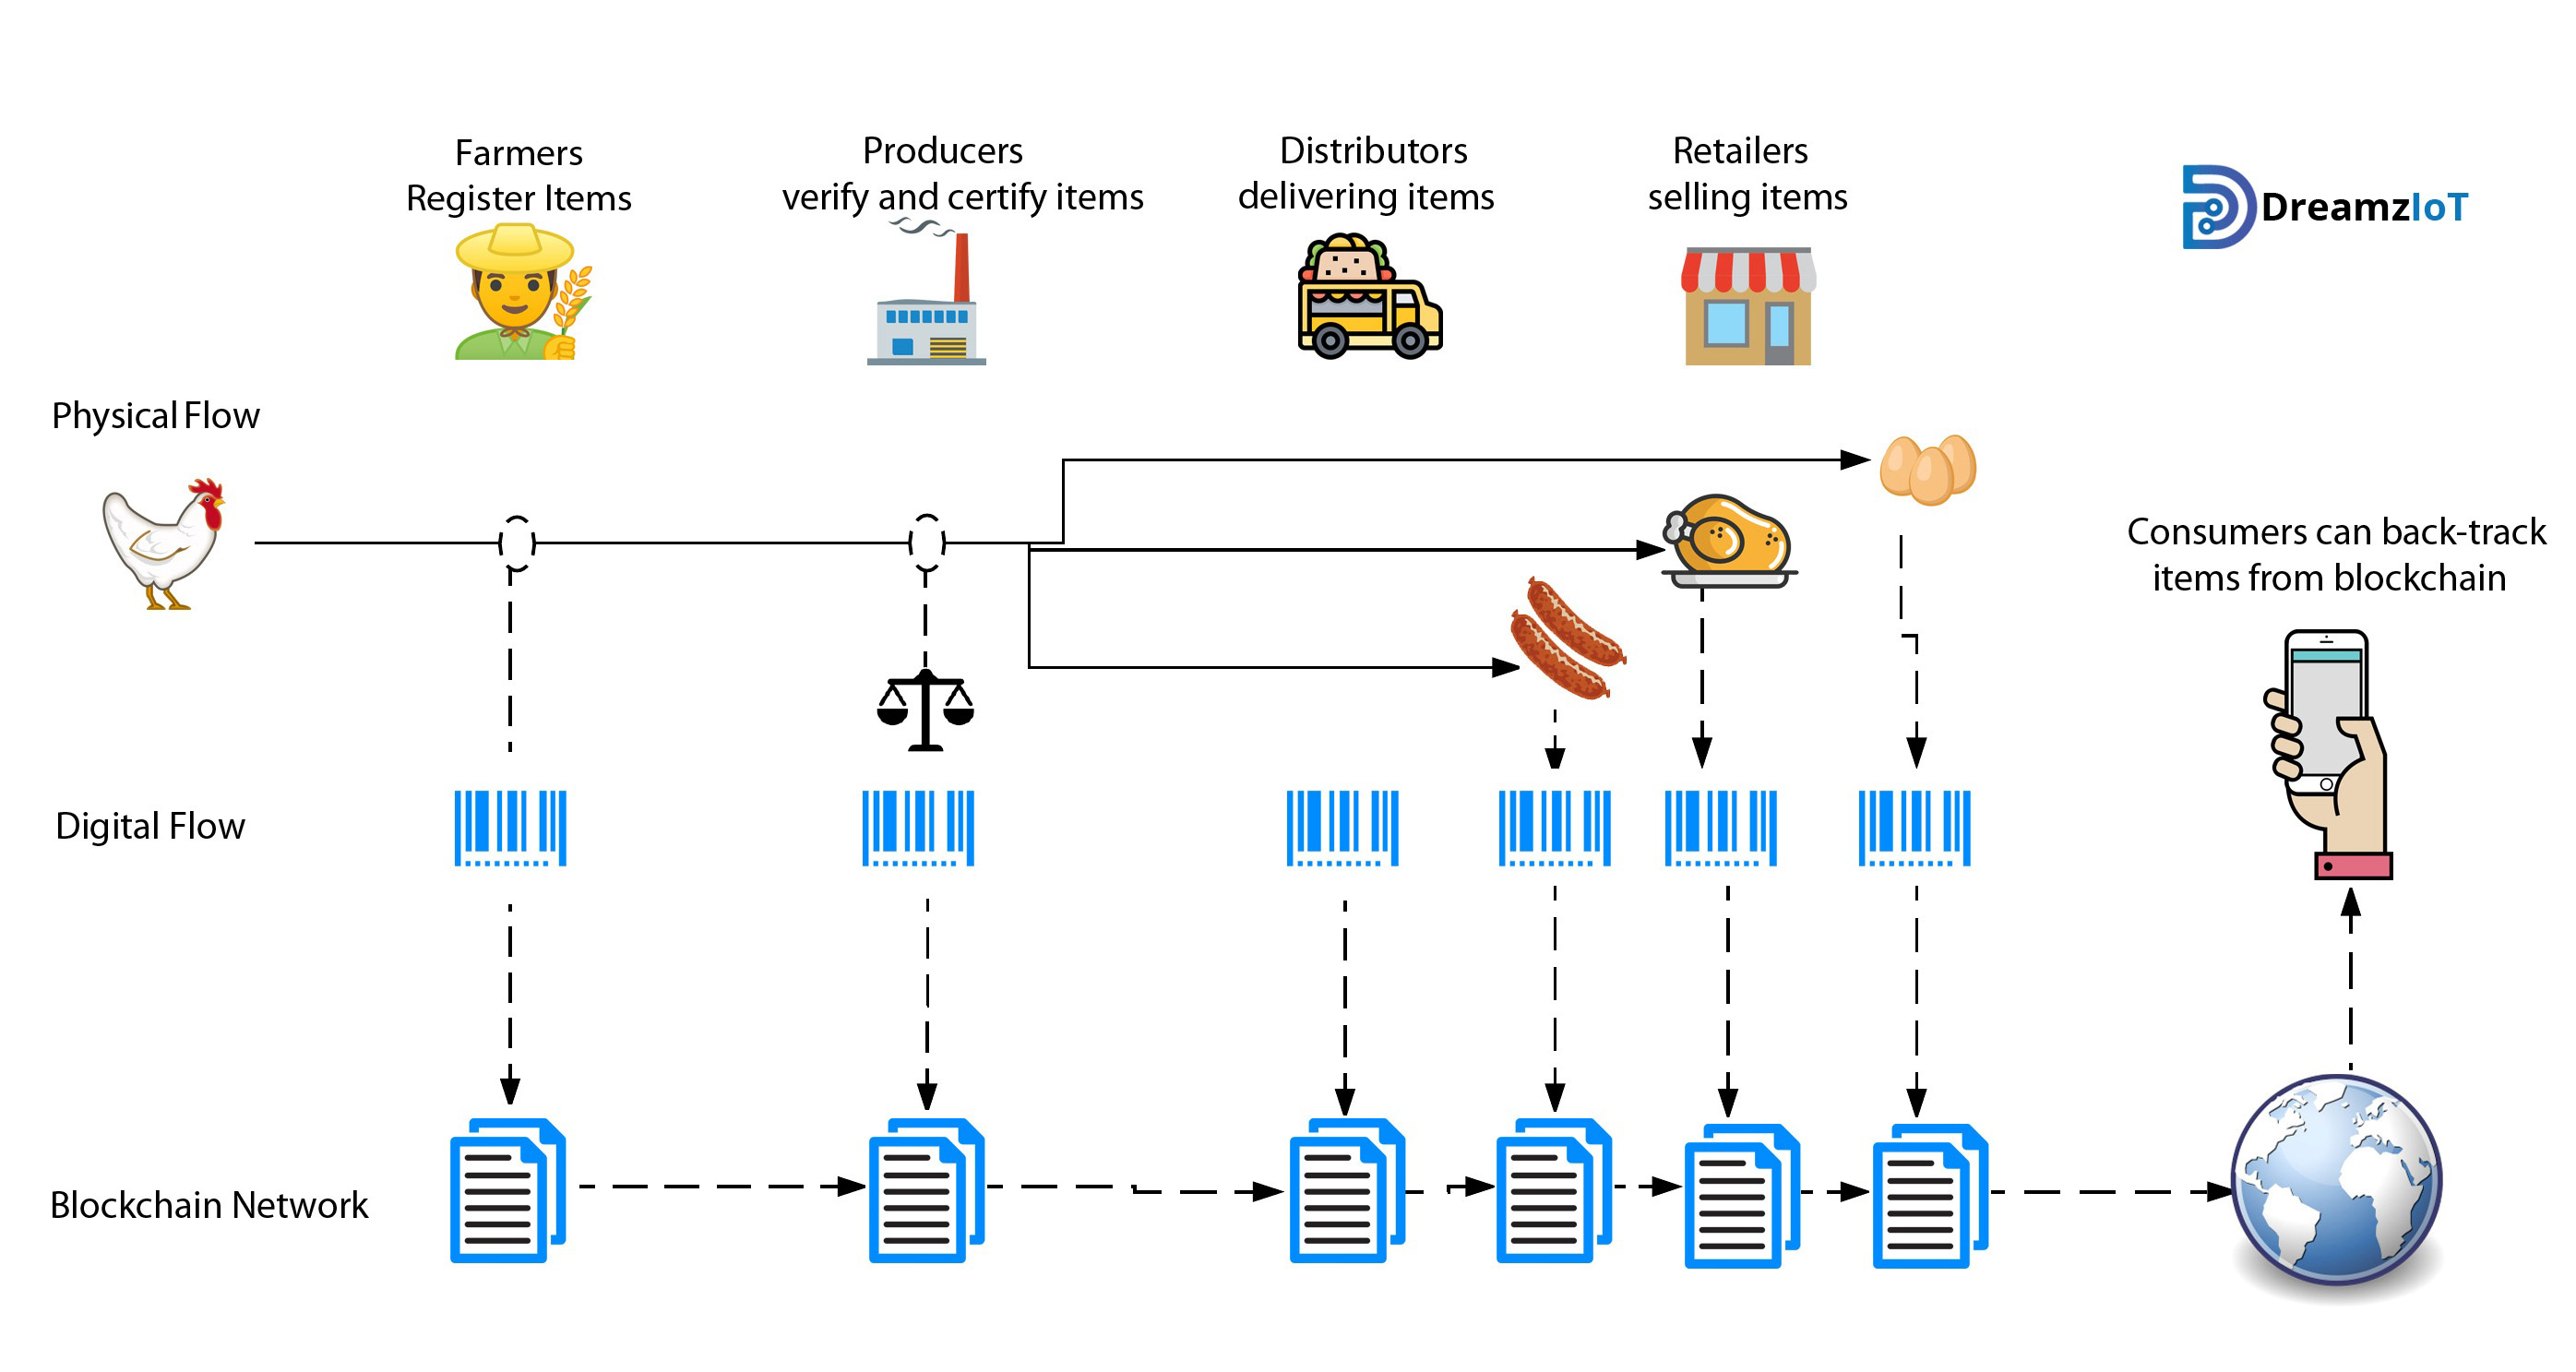 Technology Management Image: How Smart The Smart Contract In Helping The Supply Chain